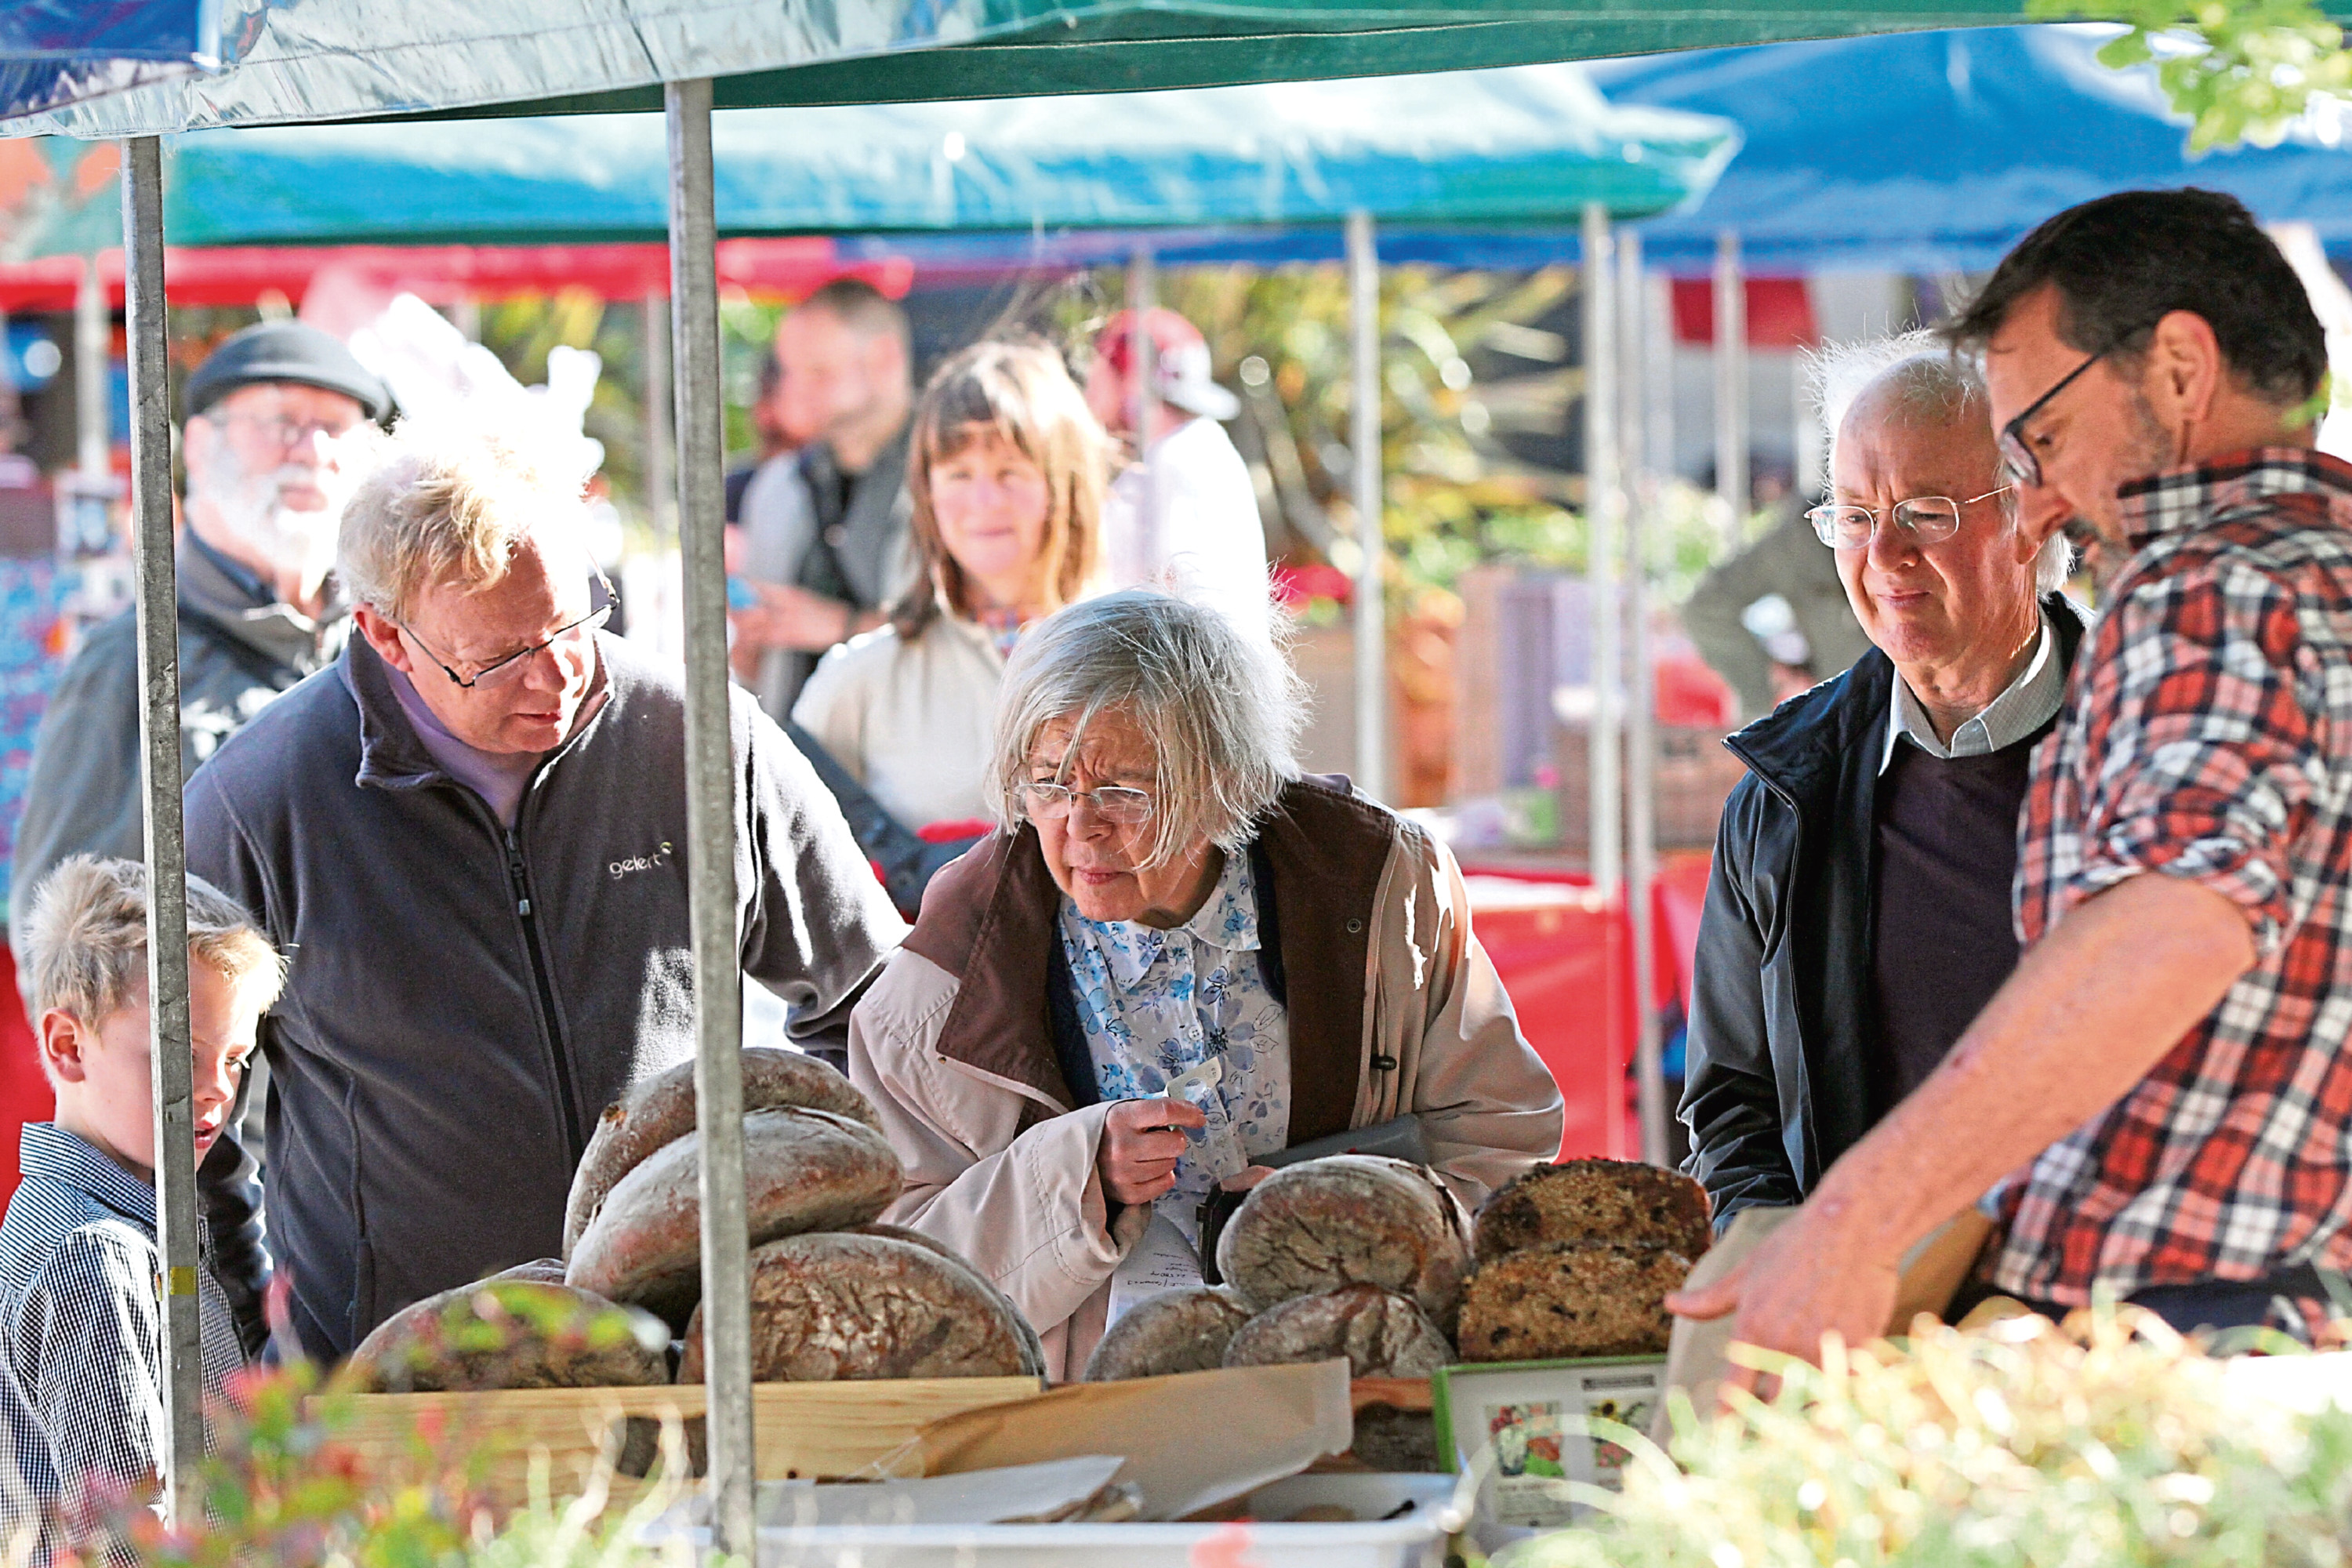 The bread stall attracts customers